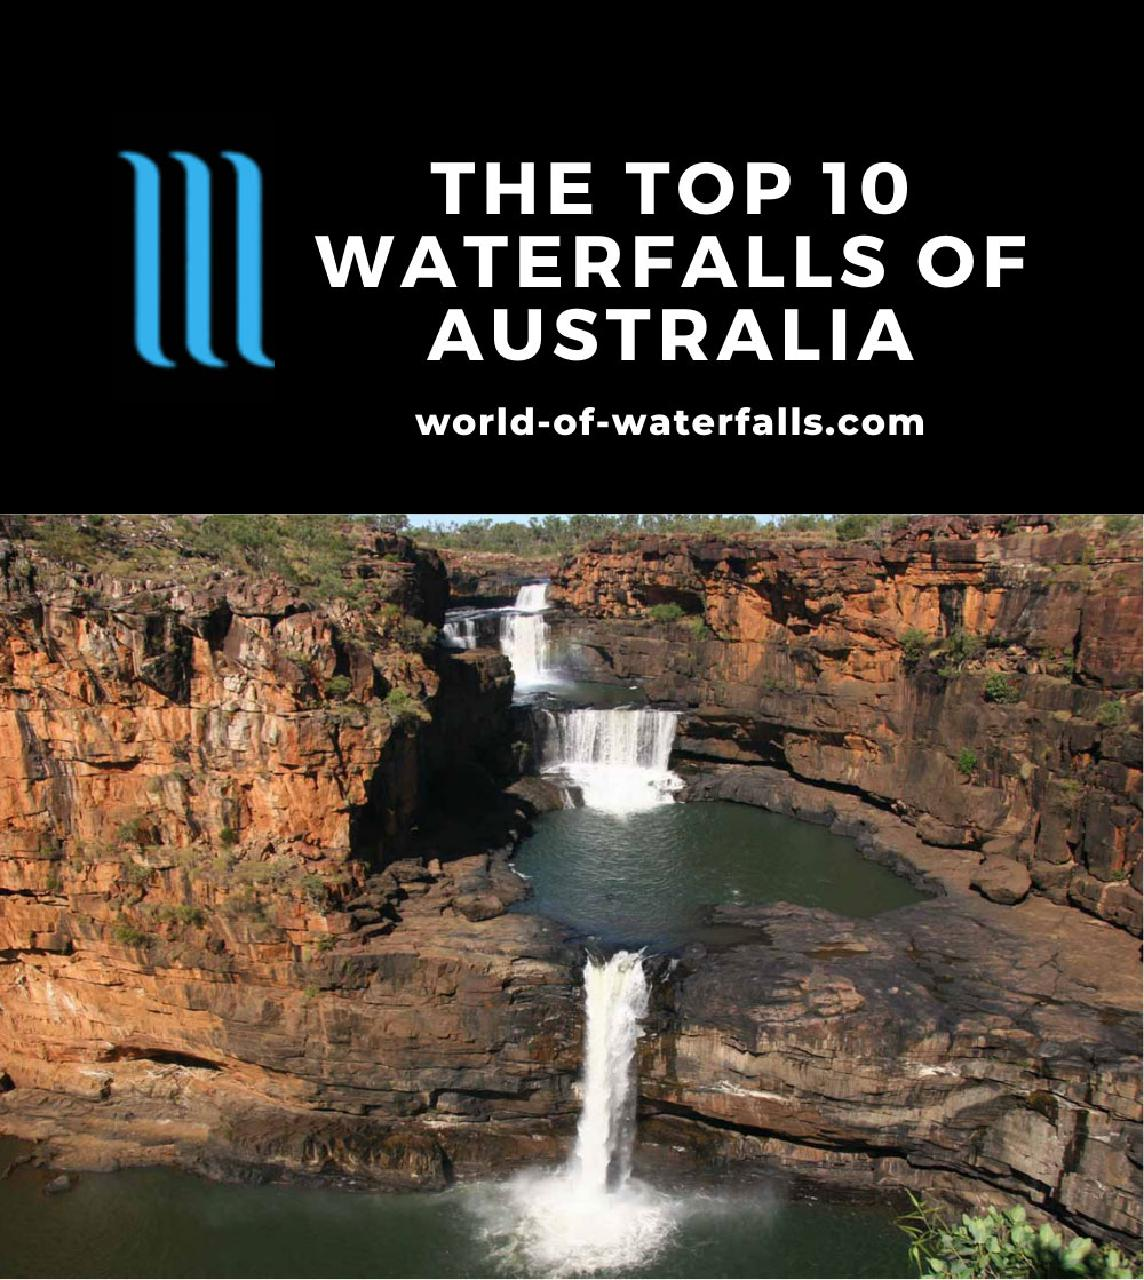 The Top 10 Waterfalls of Australia